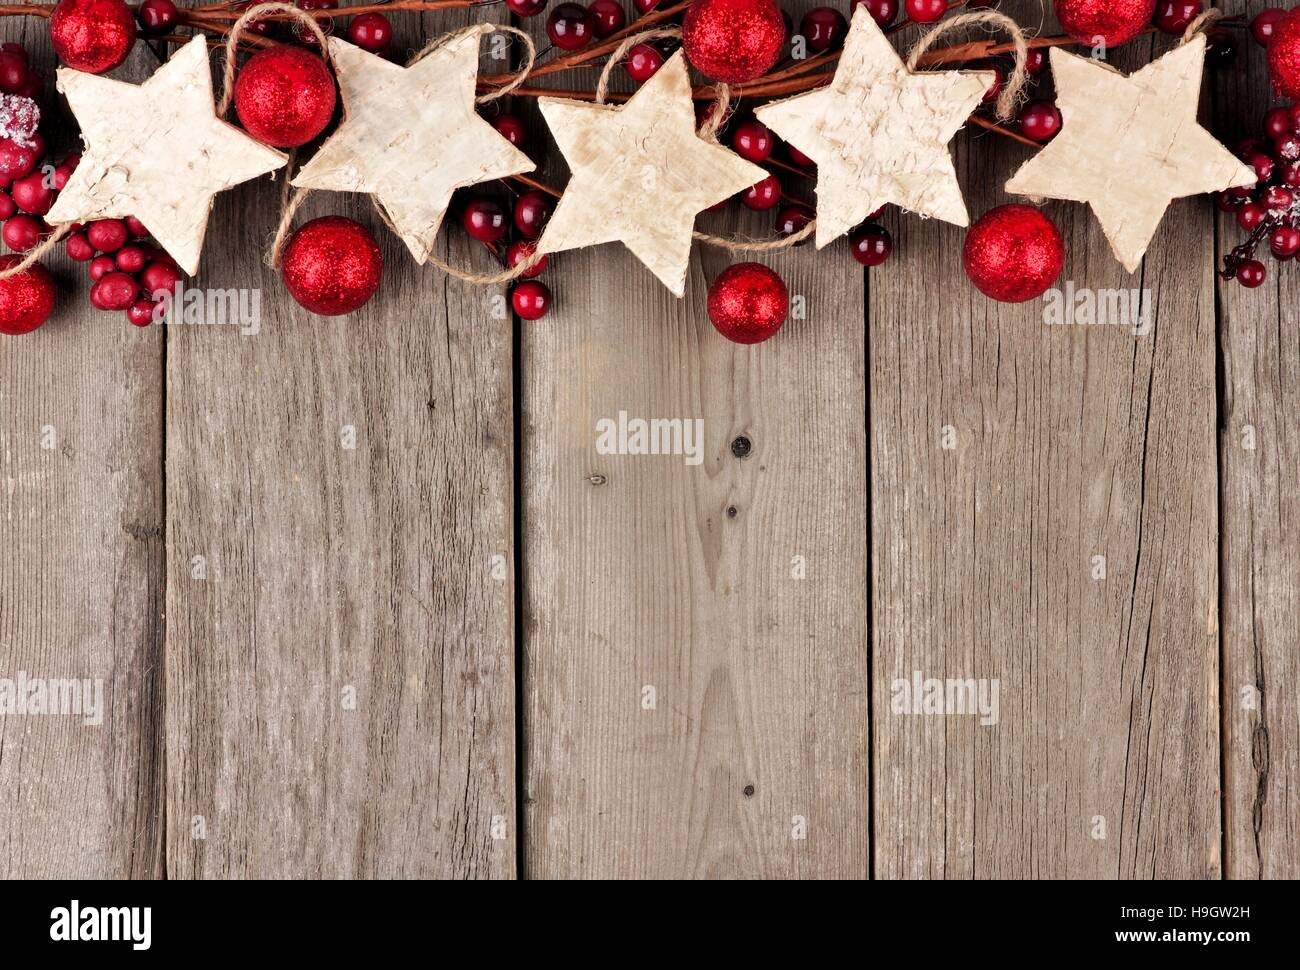 Christmas Top Border.Rustic Christmas Top Border With Wood Star Ornaments And